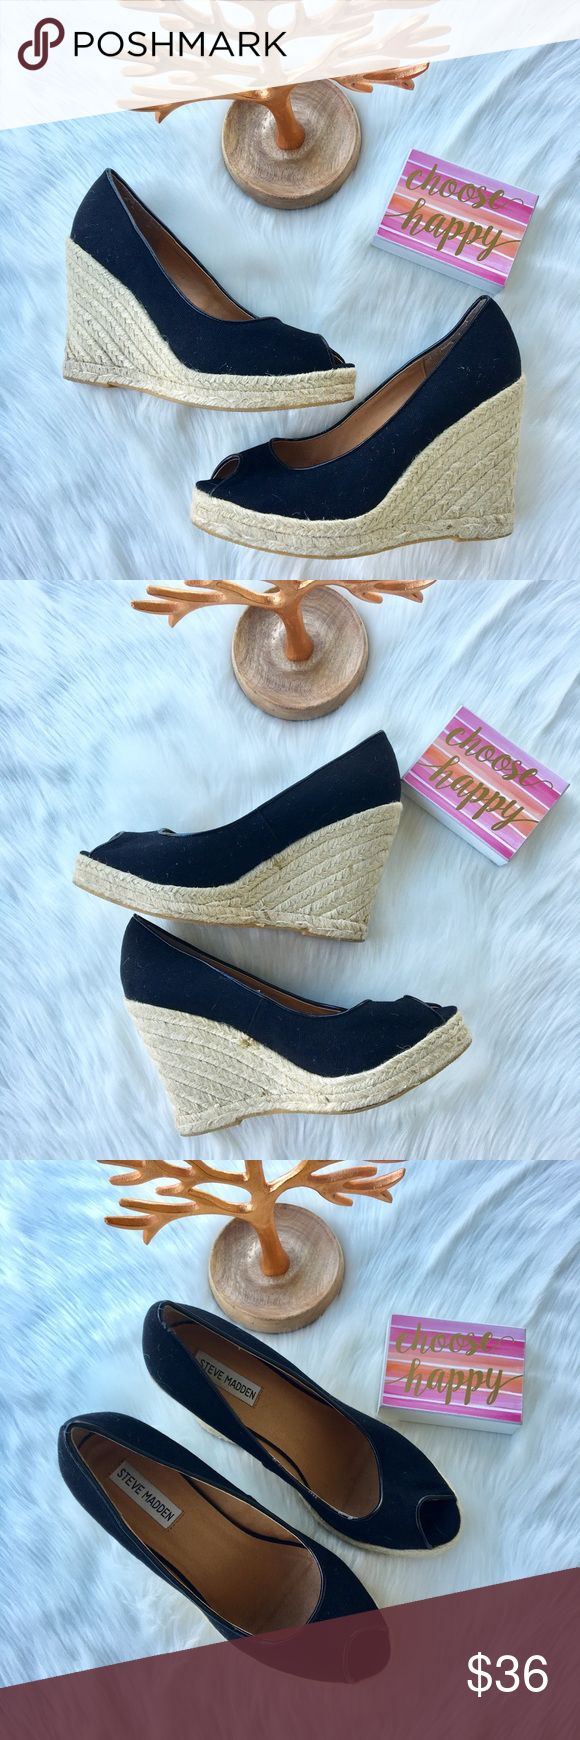 """Steve Madden Black peep toe Wedges Women Size 8 Steve Madden Black peep toe Wedges Women Size 8 excellent pre loved condition.  Black in color with 4"""" heal and platform gold.  Wear these with jeans, a dress or shorts for a fresh look & style.   🤔 Ask any & all questions ✅Use Offer Button 🚭& 🐶😺🐠Free Home 🚫Trades/Offline Transactions 📦Bundle & Save Steve Madden Shoes Wedges"""